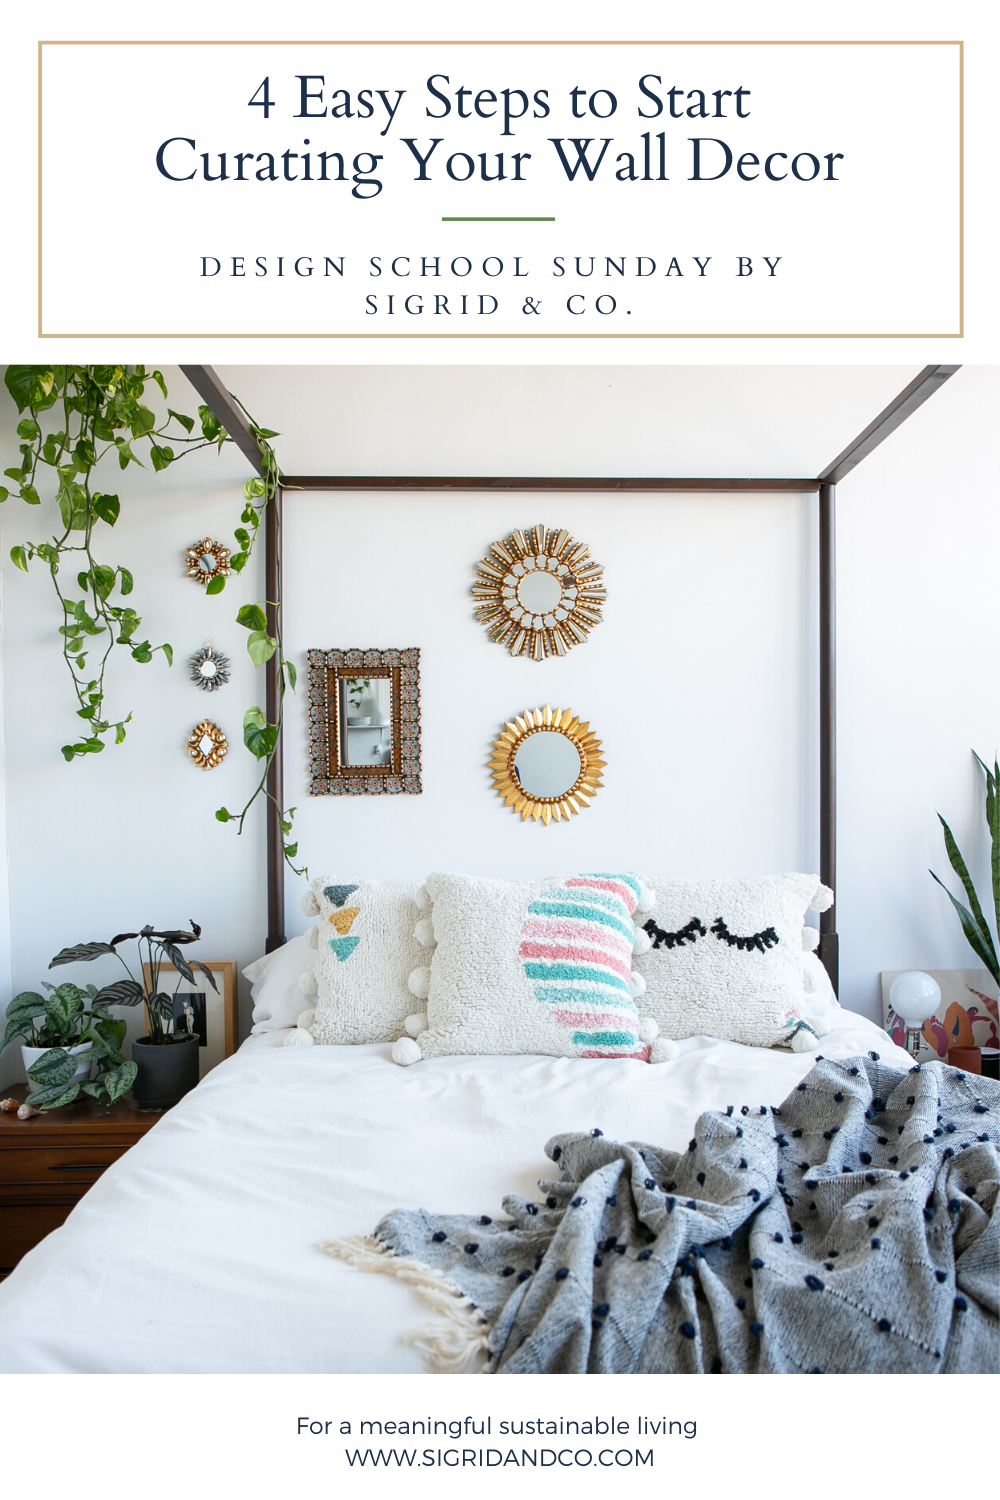 4 Steps to Start Curating Your Wall Decor - Sigrid & Co.